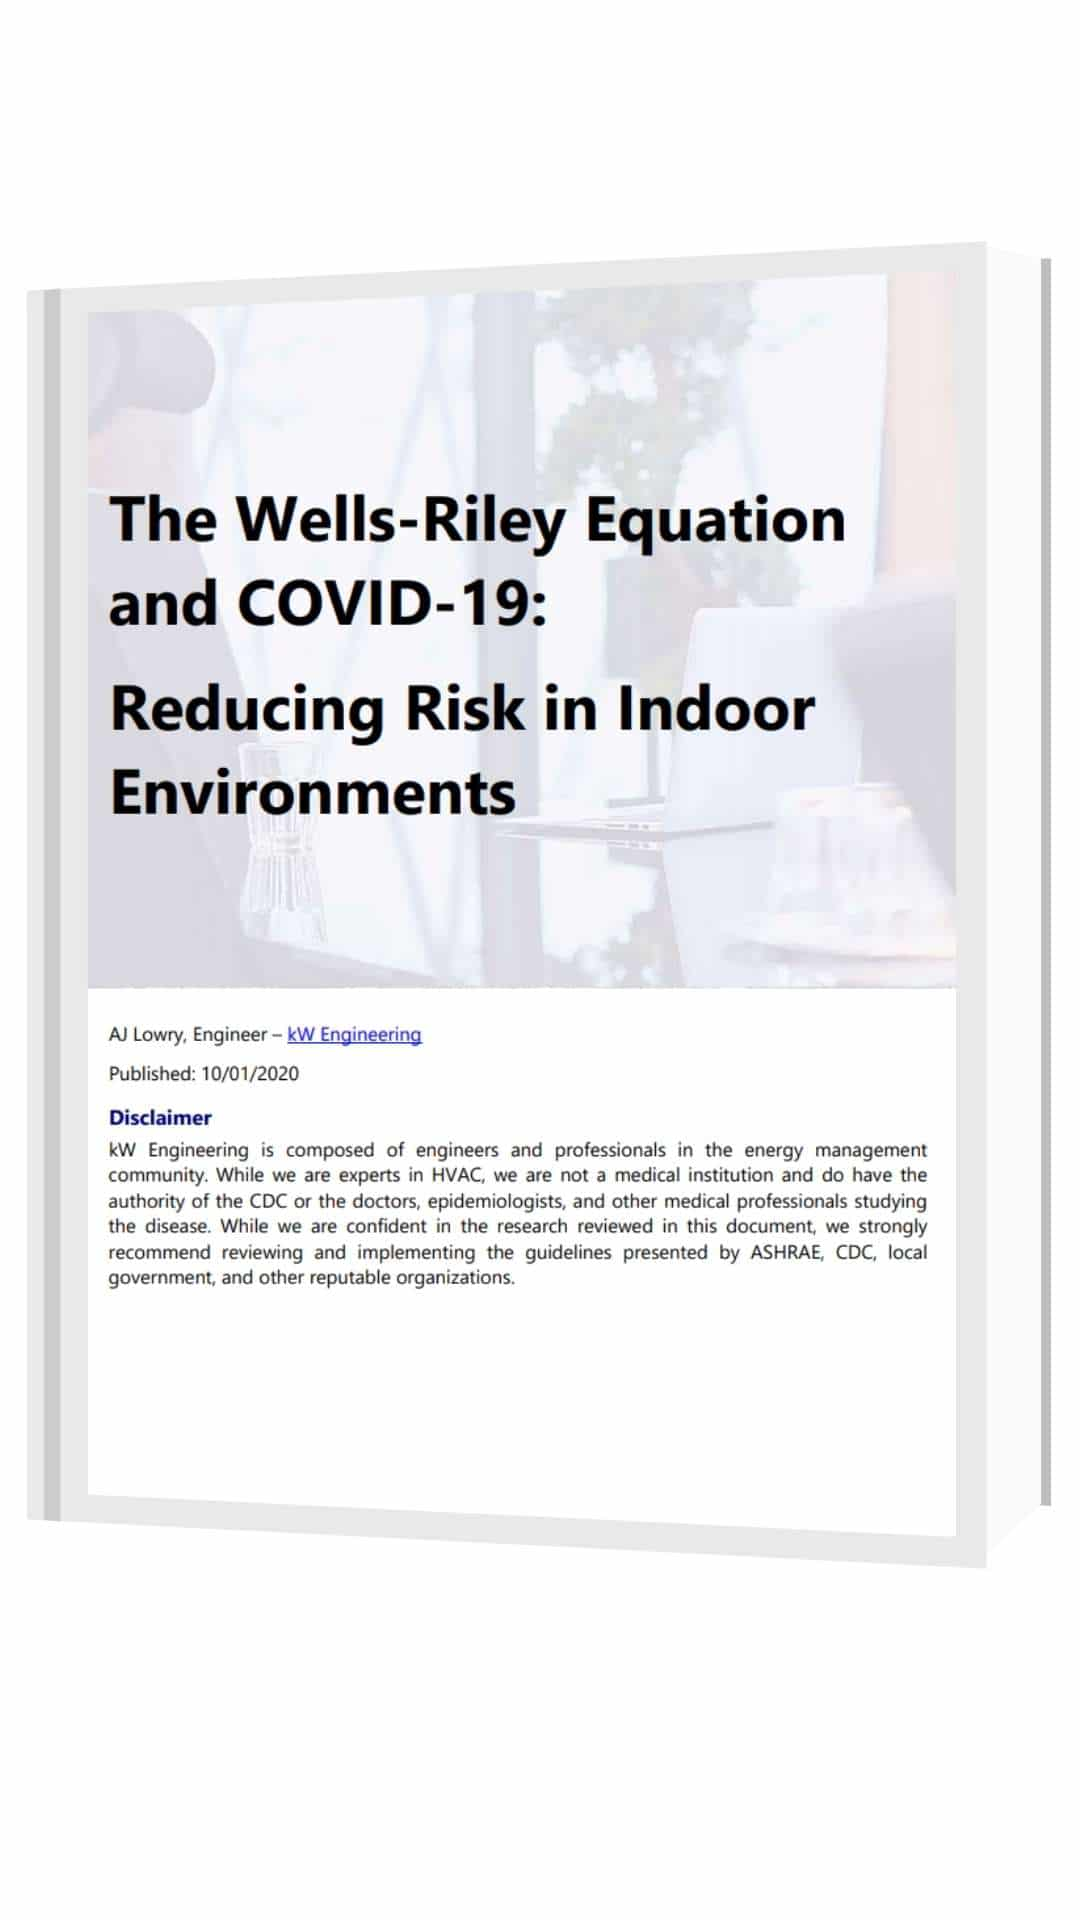 whitepaper wells-riley covid-19 building readiness ventilation guide kw engineering (1)